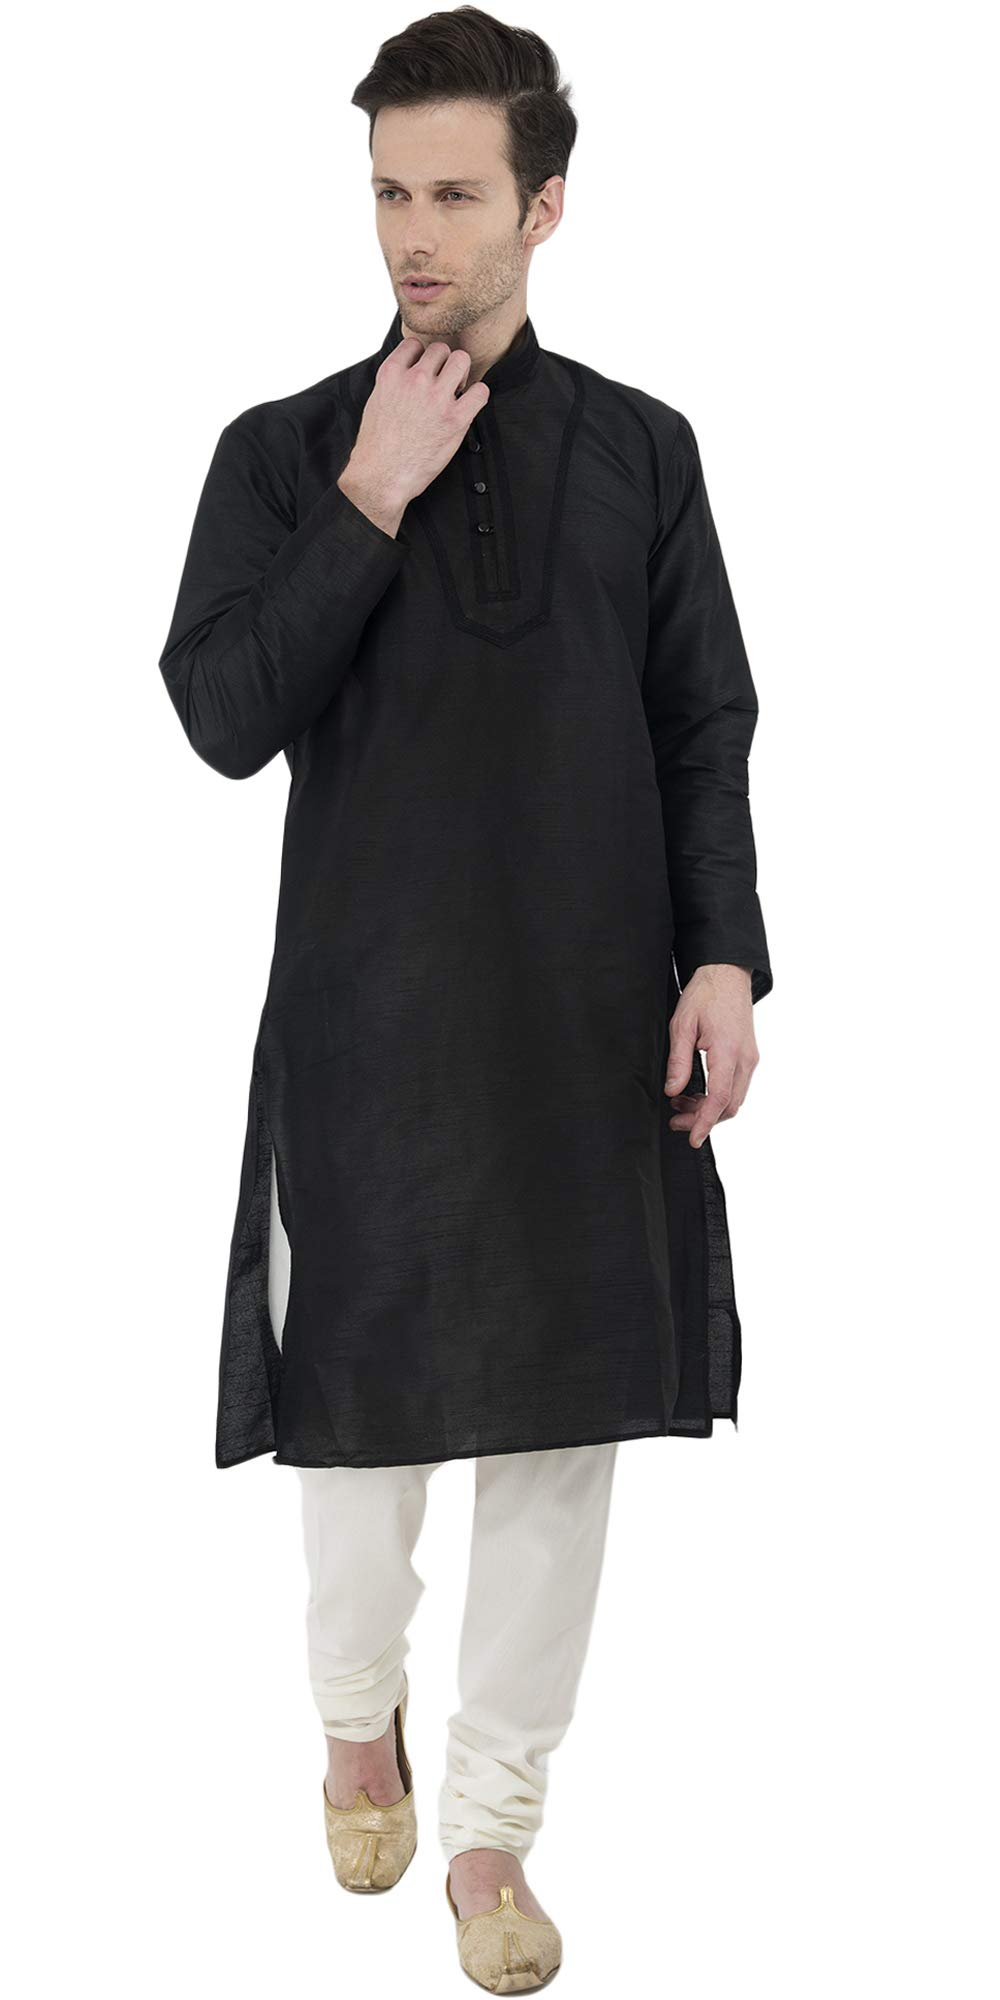 Black Kurta Pajama Set Dress for Men Indian Wedding Party Wear Long Sleeve Button Down Shirt -XL